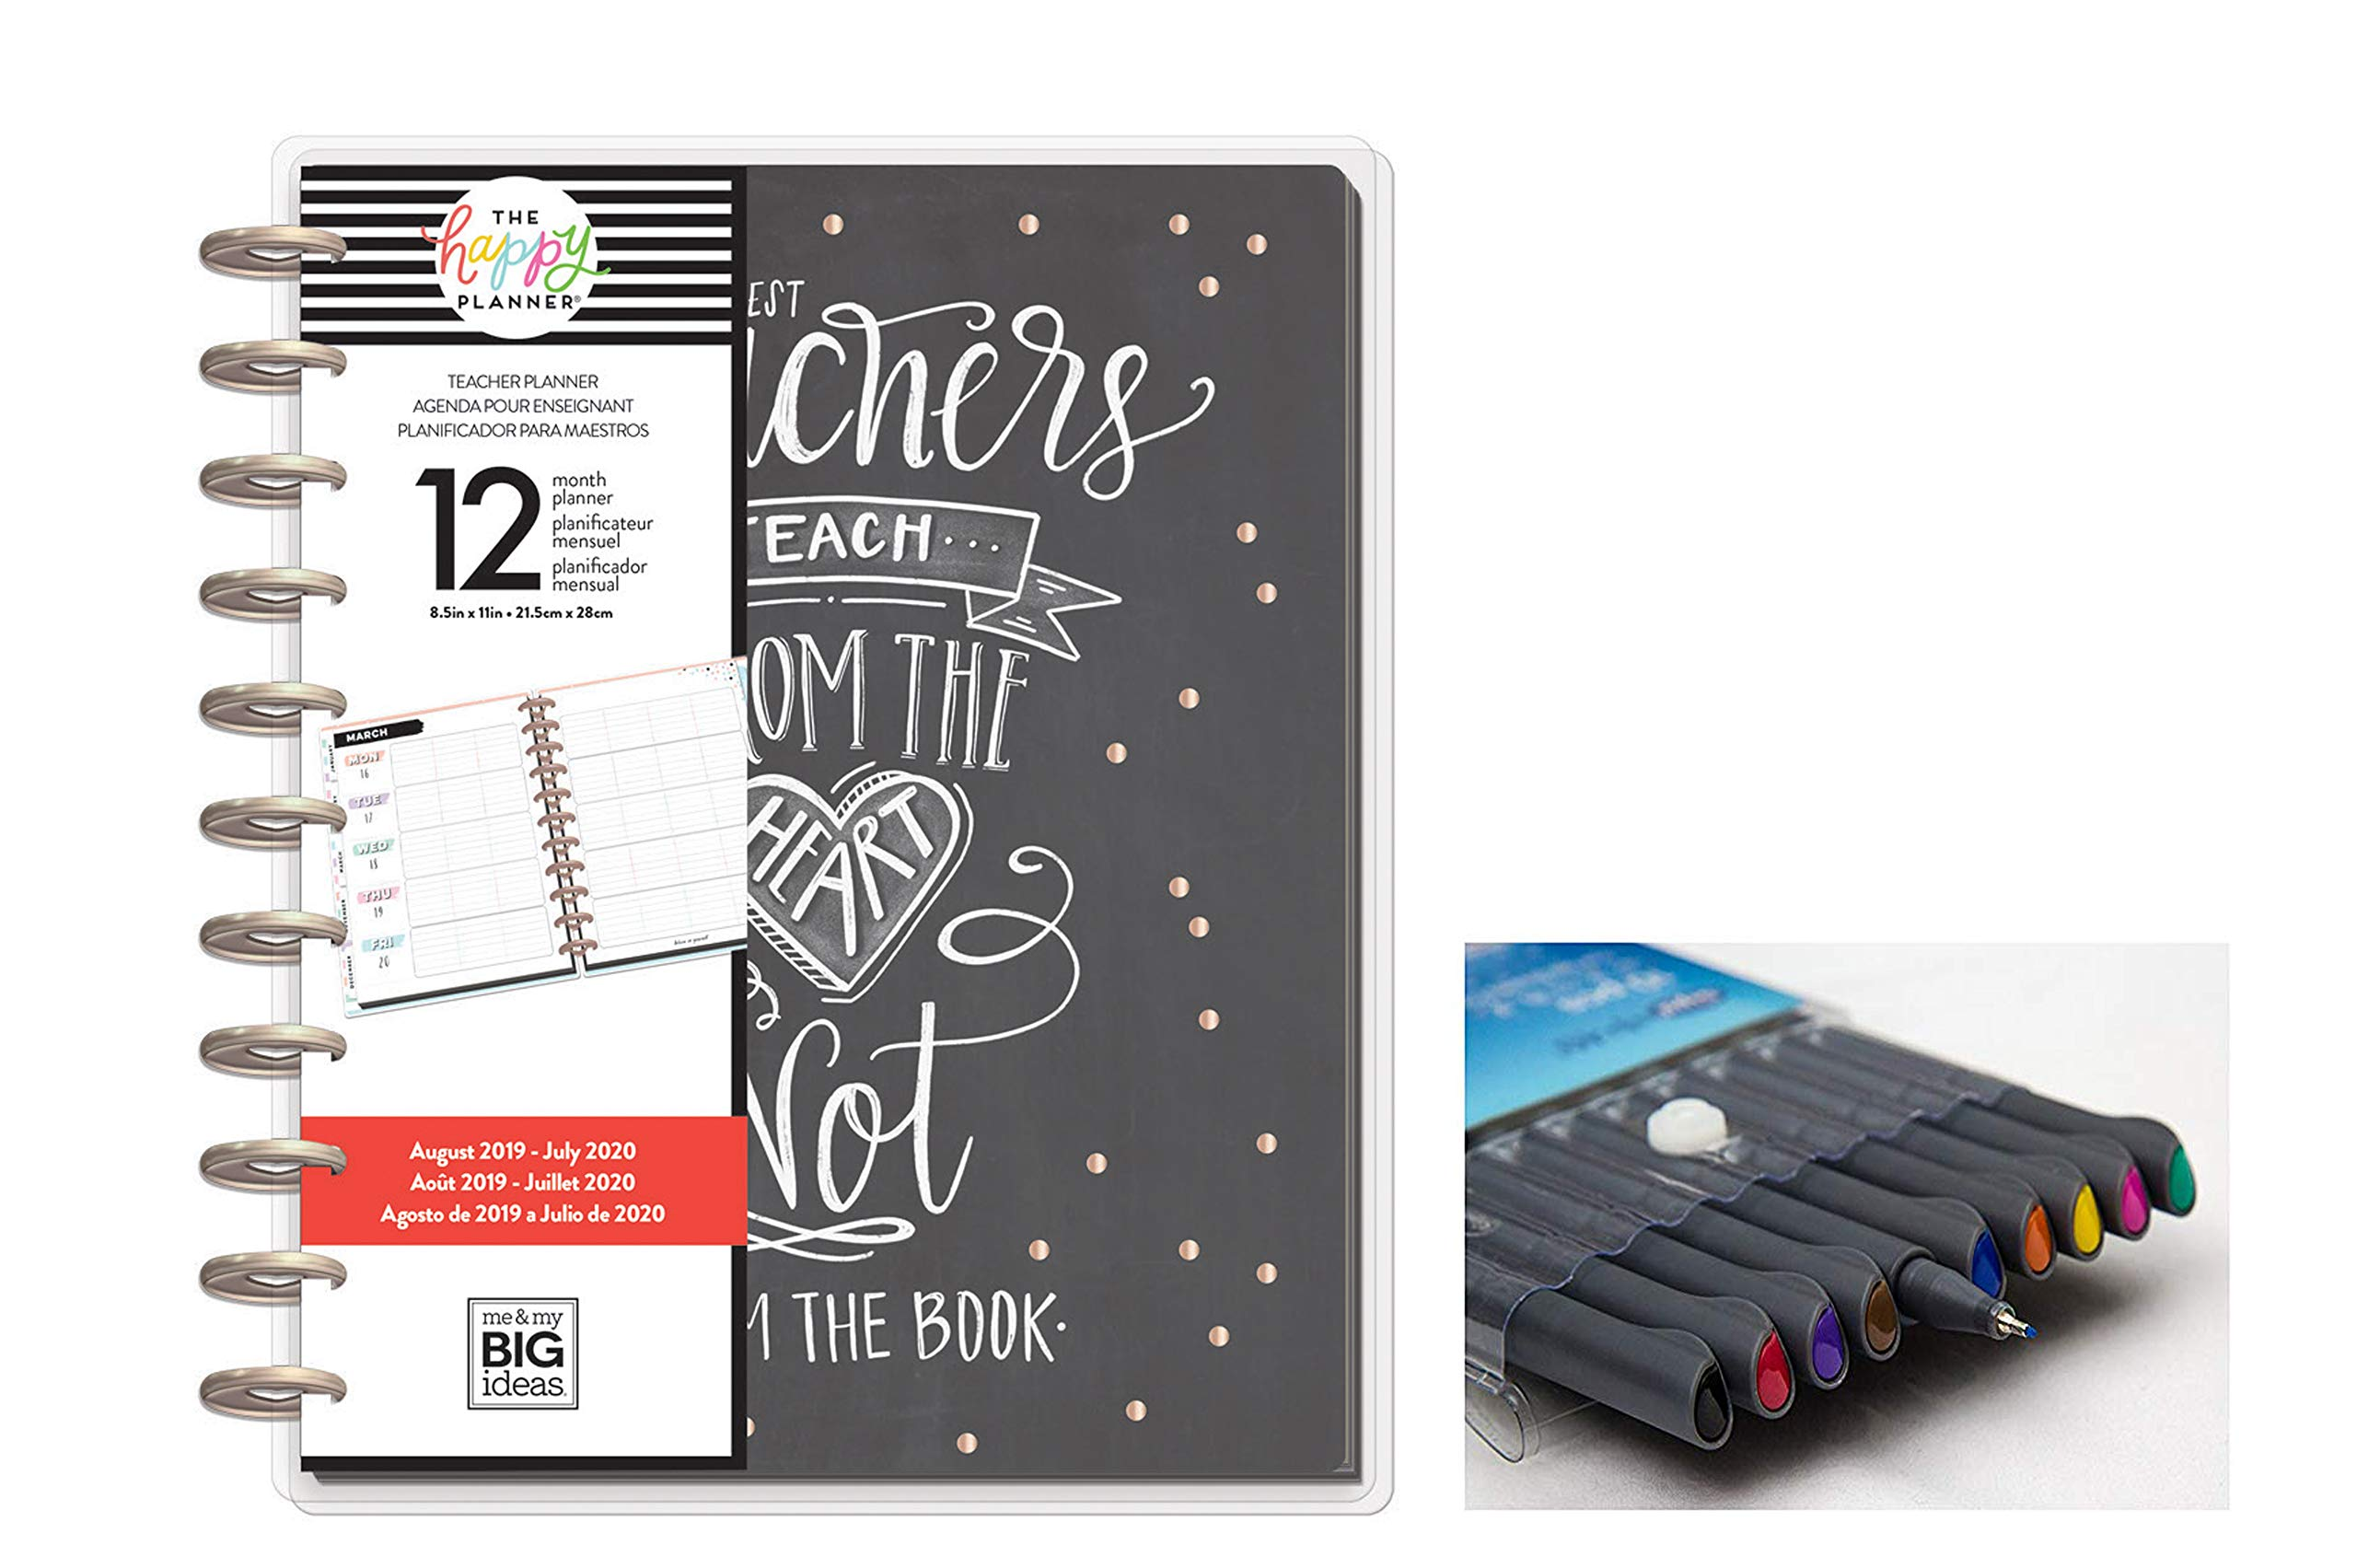 me & My Big Ideas Create 365 The Happy Planner Big Teacher: Teach from The Heart 12 Month Planner, Aug 2019 - July 2020 Comes with Kemah Craft 10 pc Fineliner Color Pens (PLNA-26) by Me & My Big Ideas